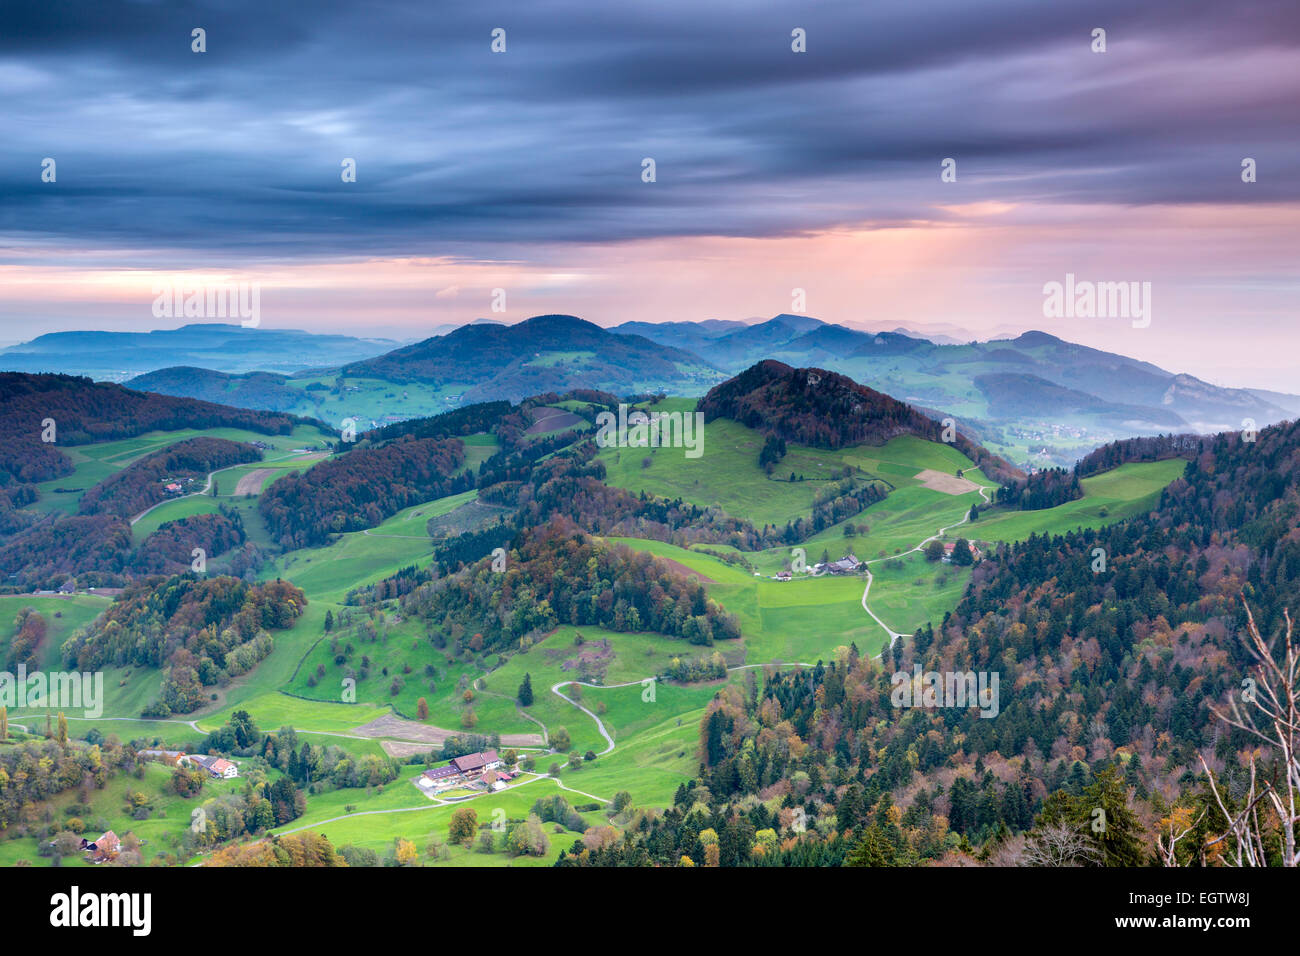 View from Belchenflue on the border of canton Basel-Landschaft and canton Solothurn in the Jura Mountains, Switzerland. - Stock Image